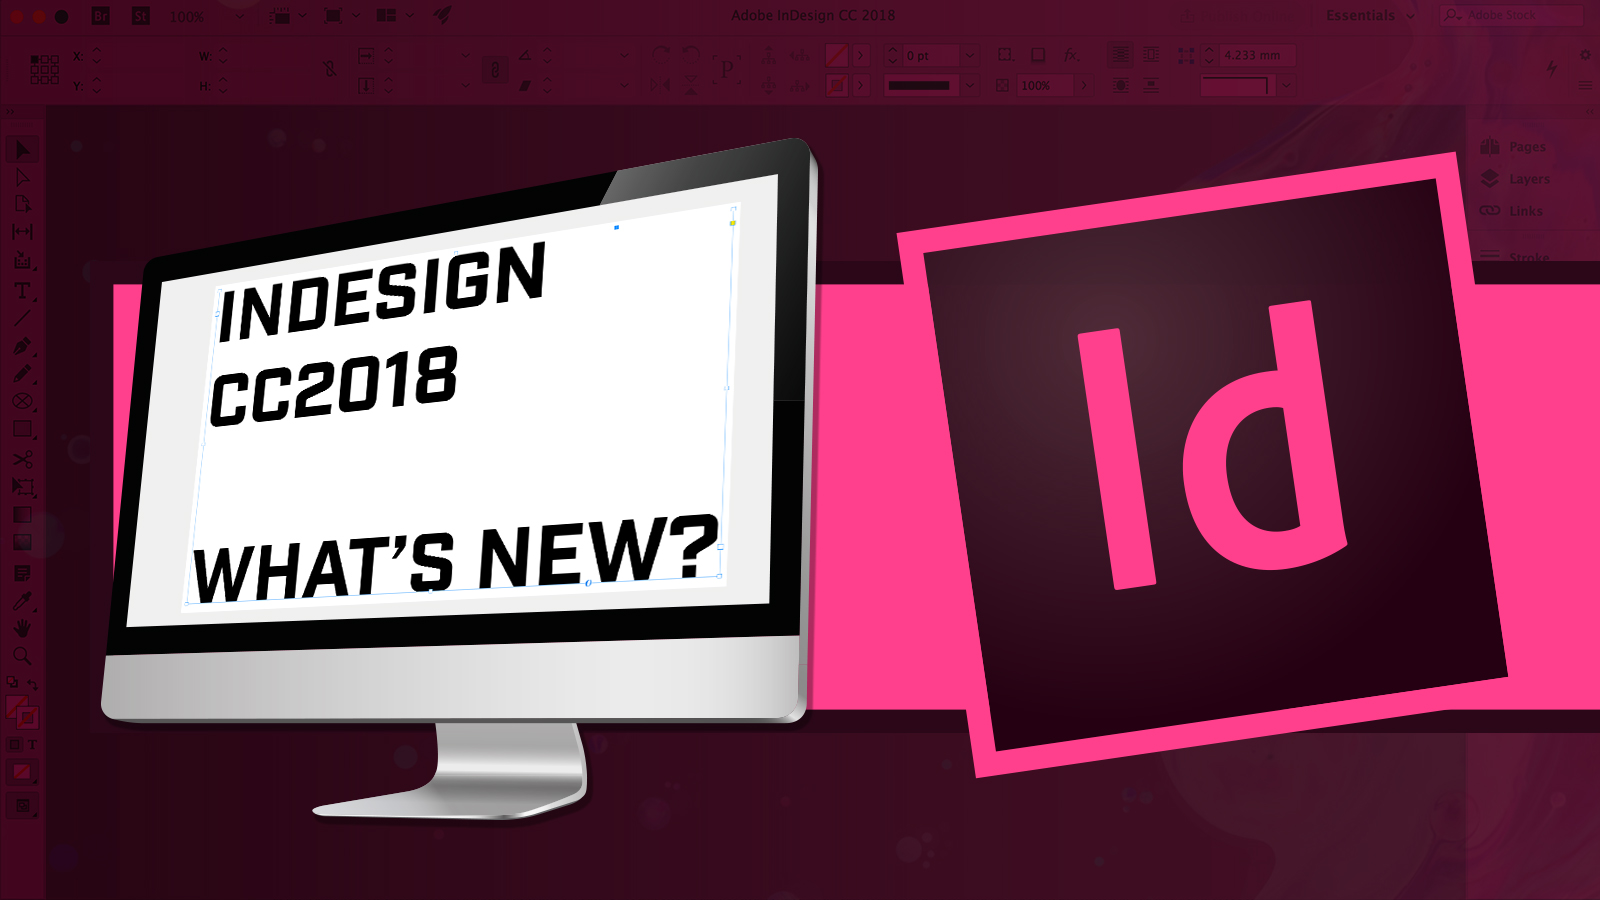 Buy Adobe InDesign CC 2018 Cheap